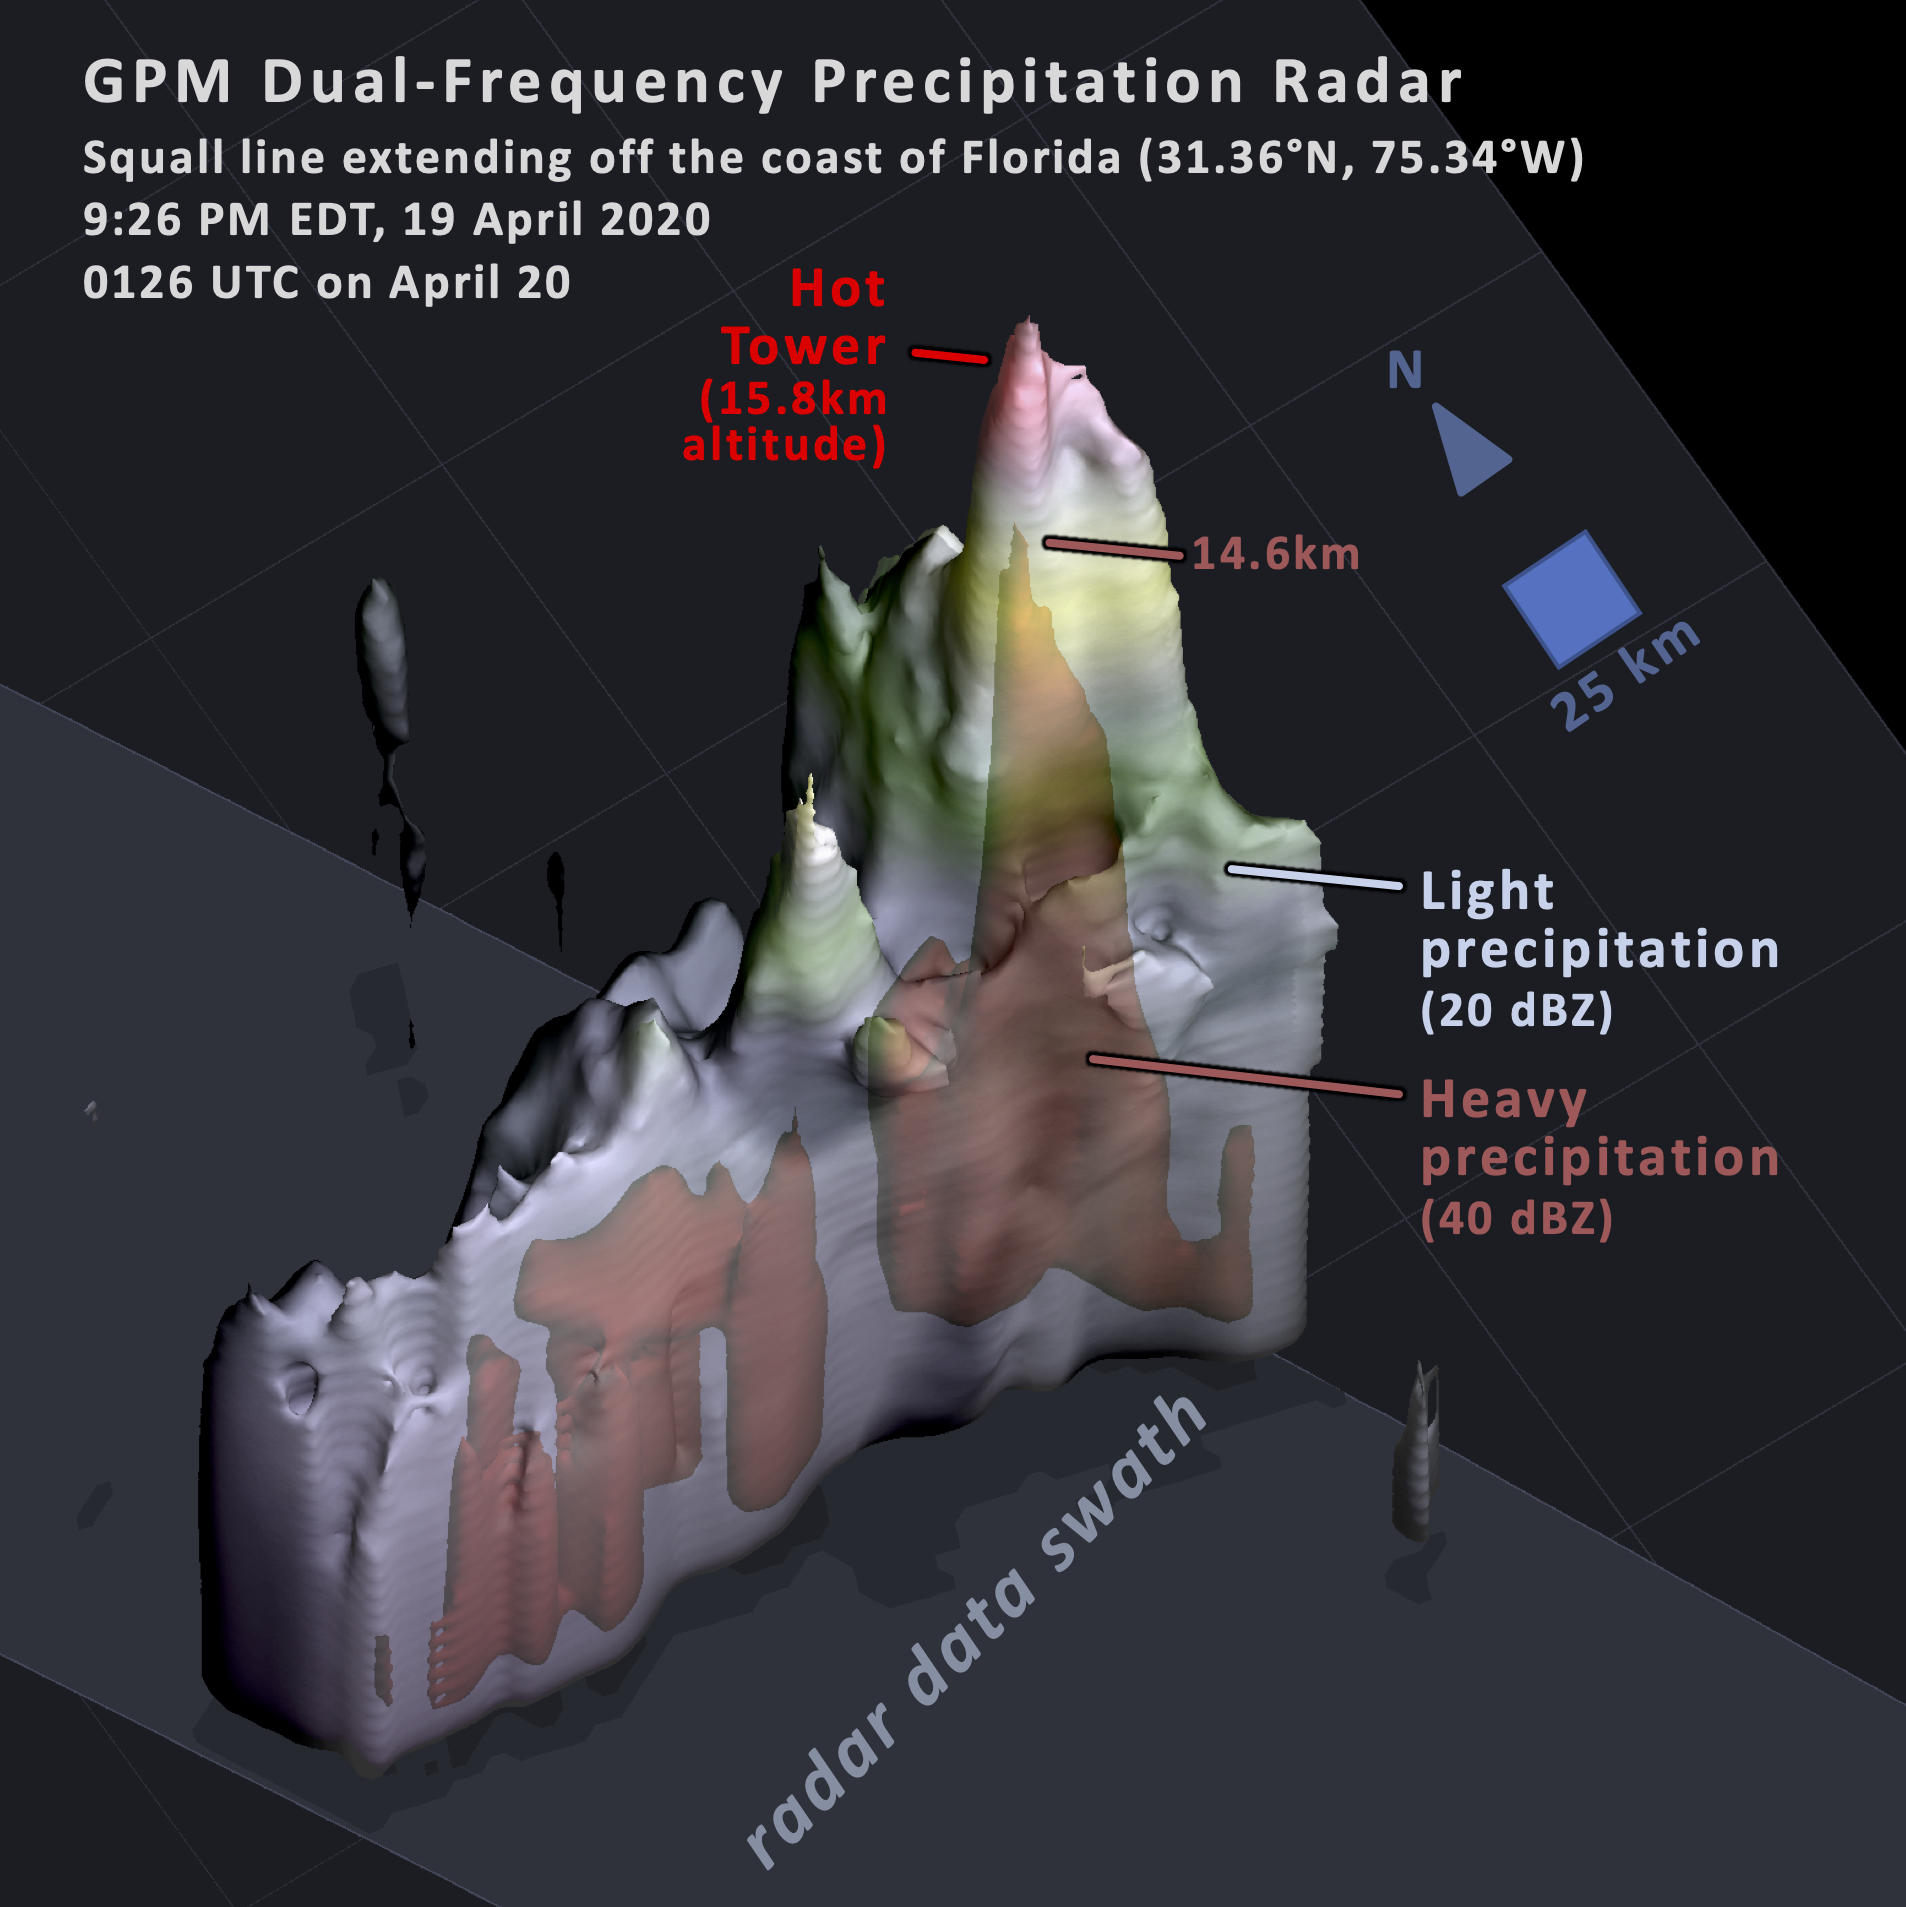 GPM Observes Hot Towers in Florida Storms